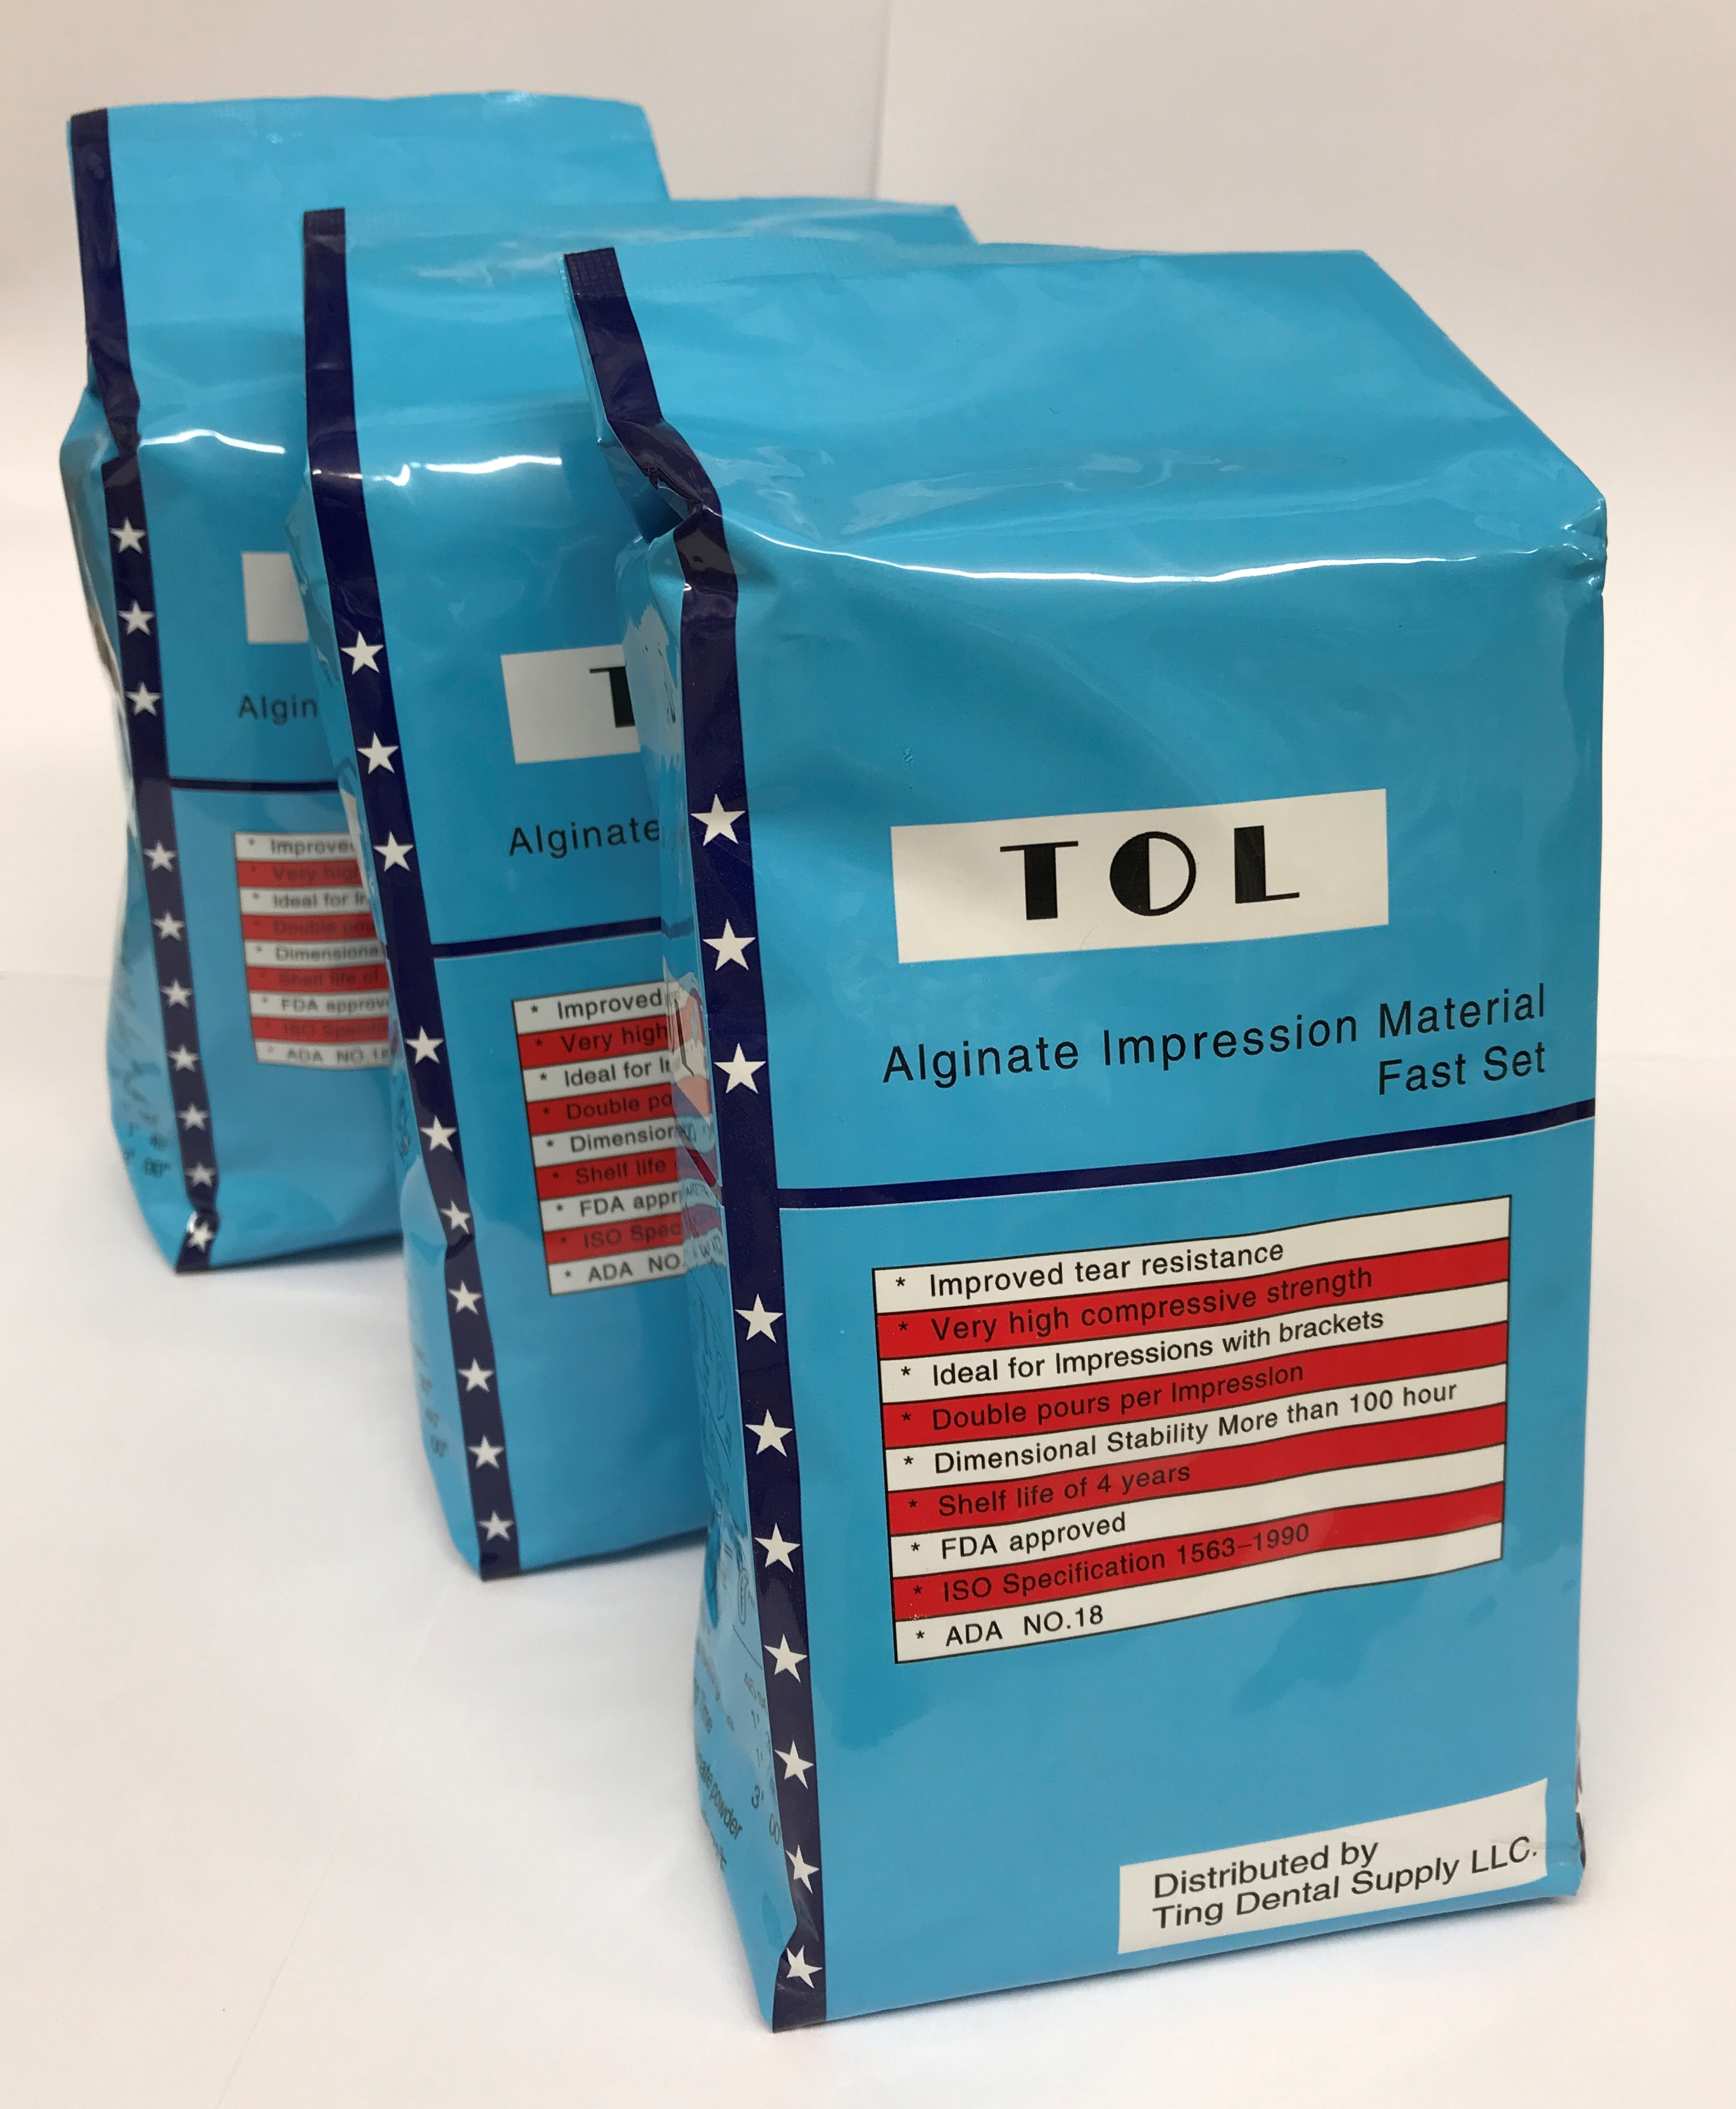 TOL FAST SET ADA NO.18 ALGINATE